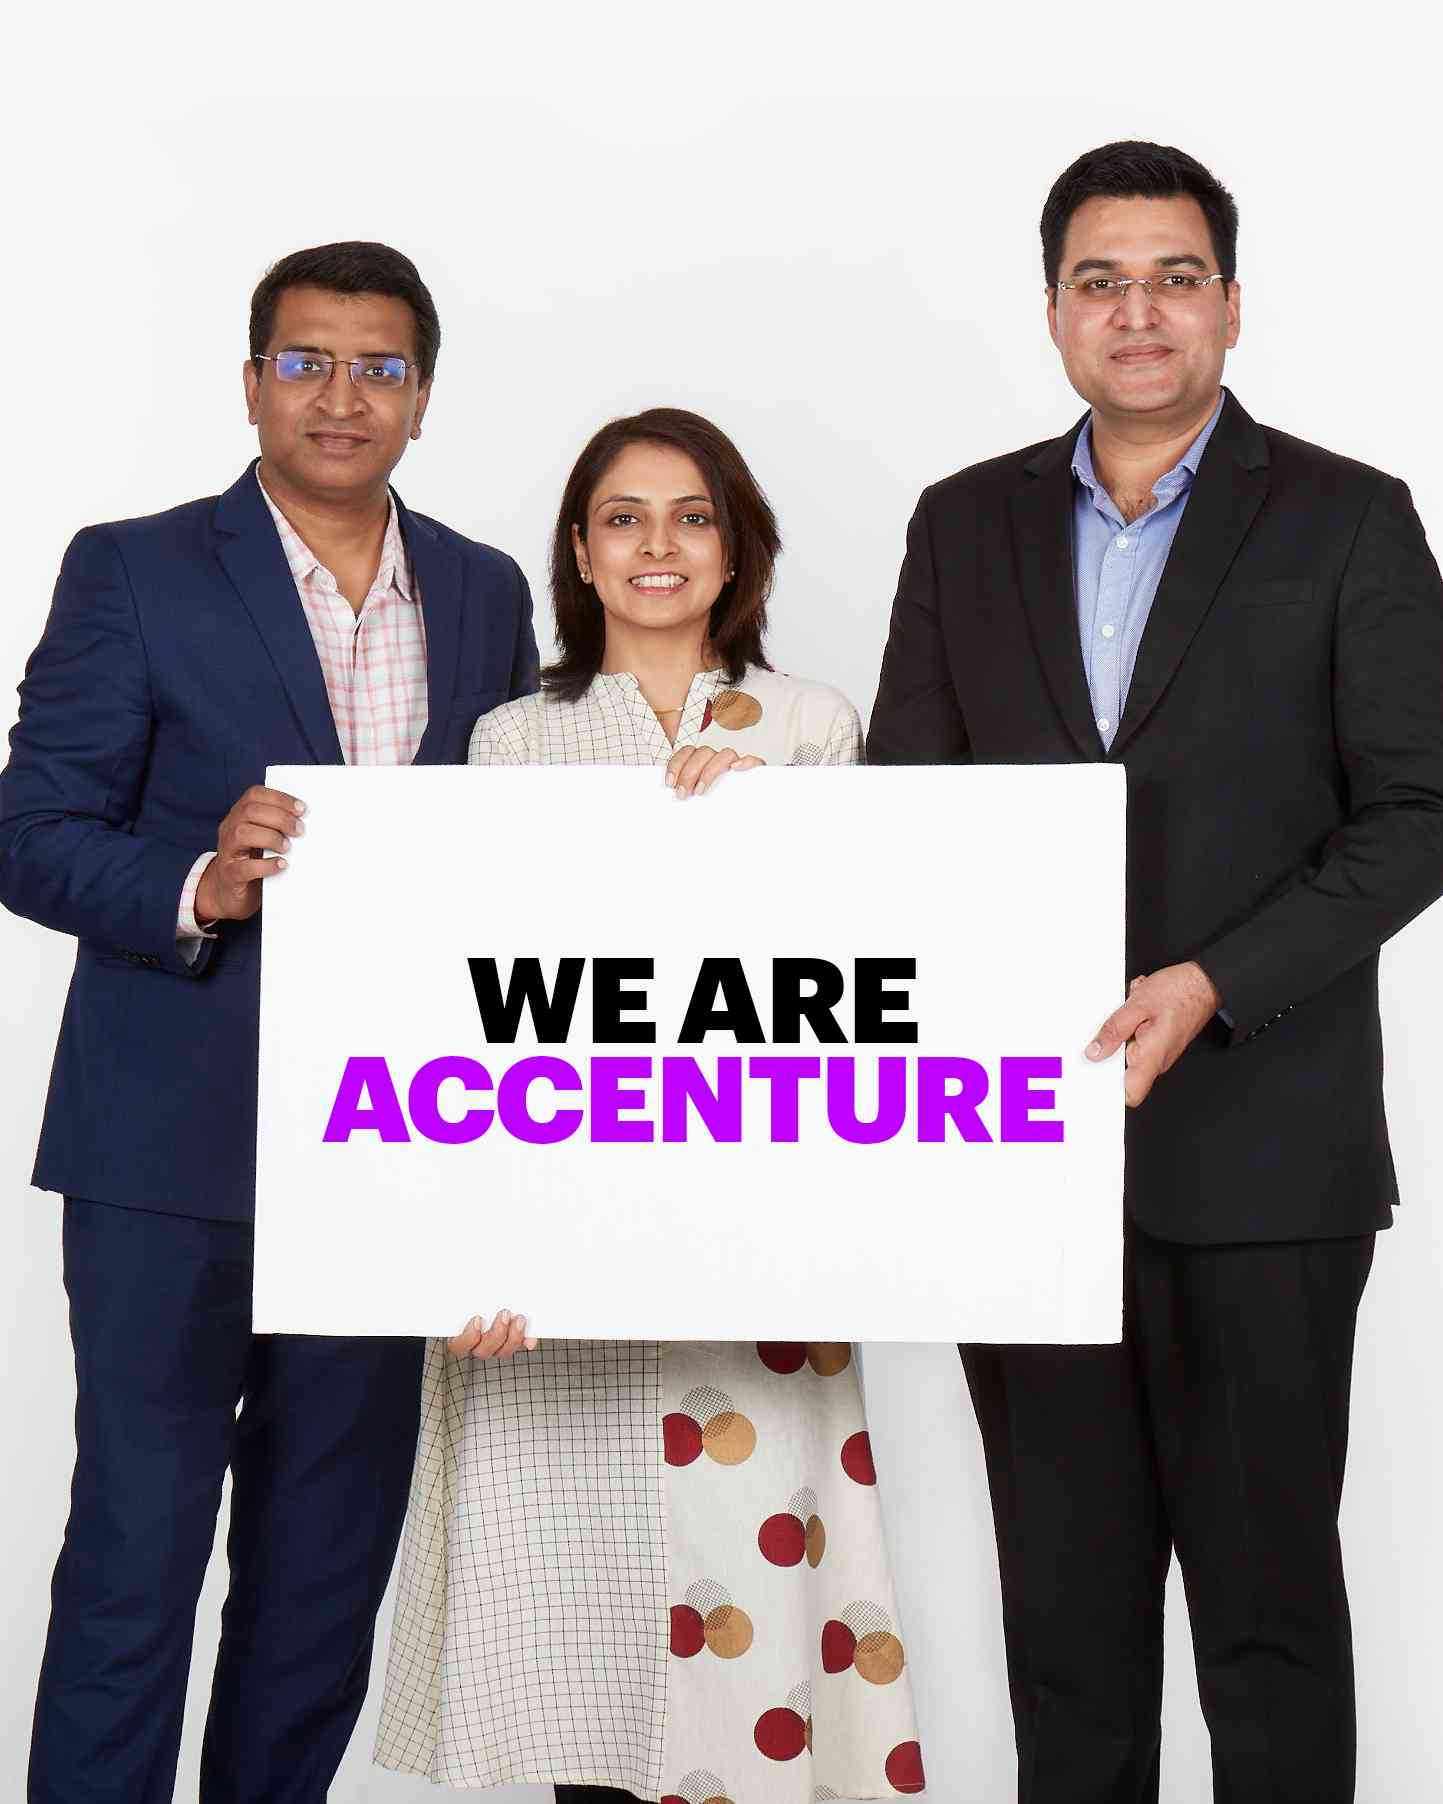 Accenture Instructional Designer 1 9 Yrs Bangalore Gurgaon Gurugram Mumbai Pune Instructional Design Training And Development Learning And Development Content Development Hr Jobs In It Ites Iim Mba Jobs Iimjobs Com